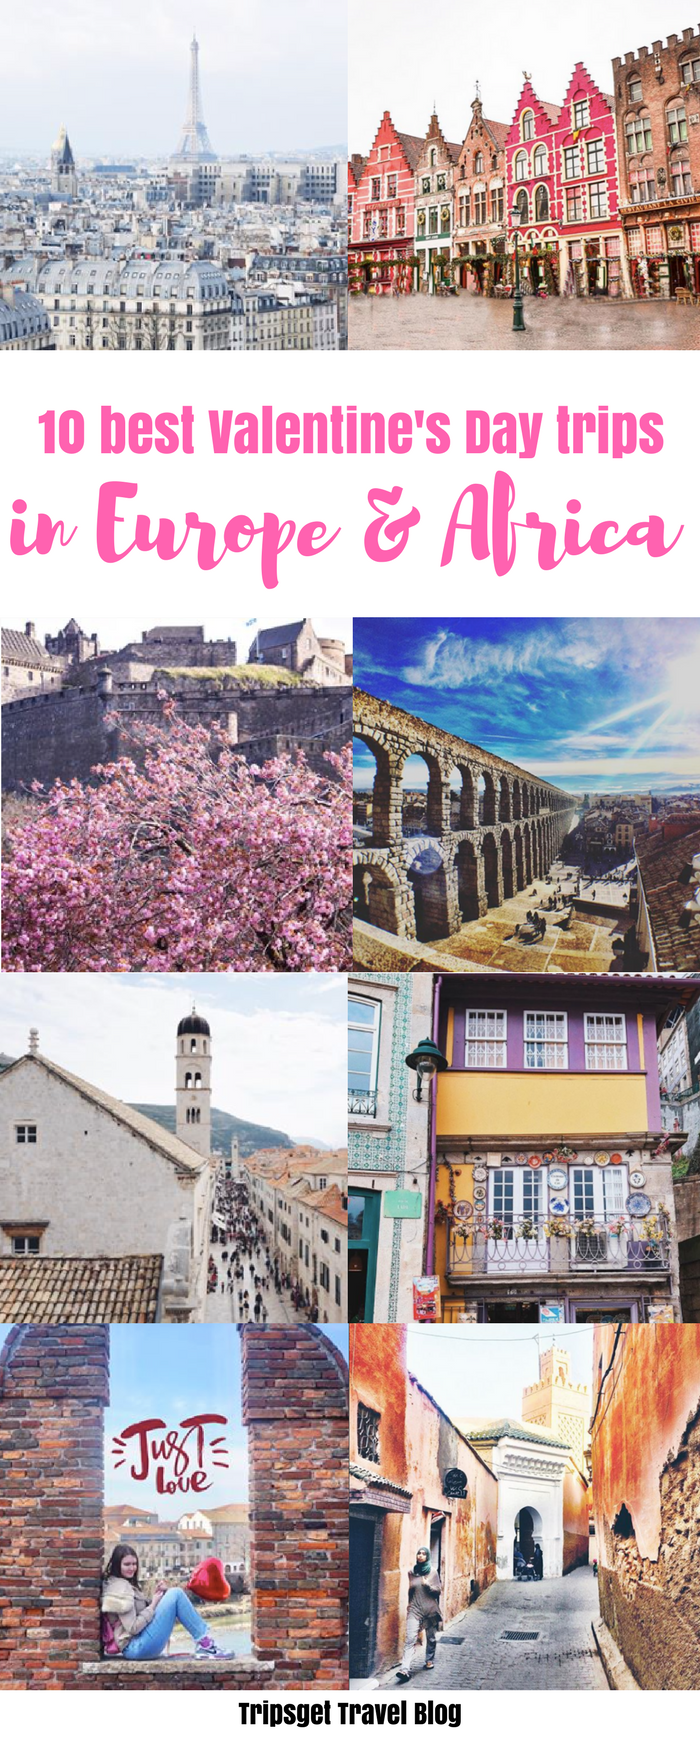 10 ideas for valentines day weekend getaway in europe & africa